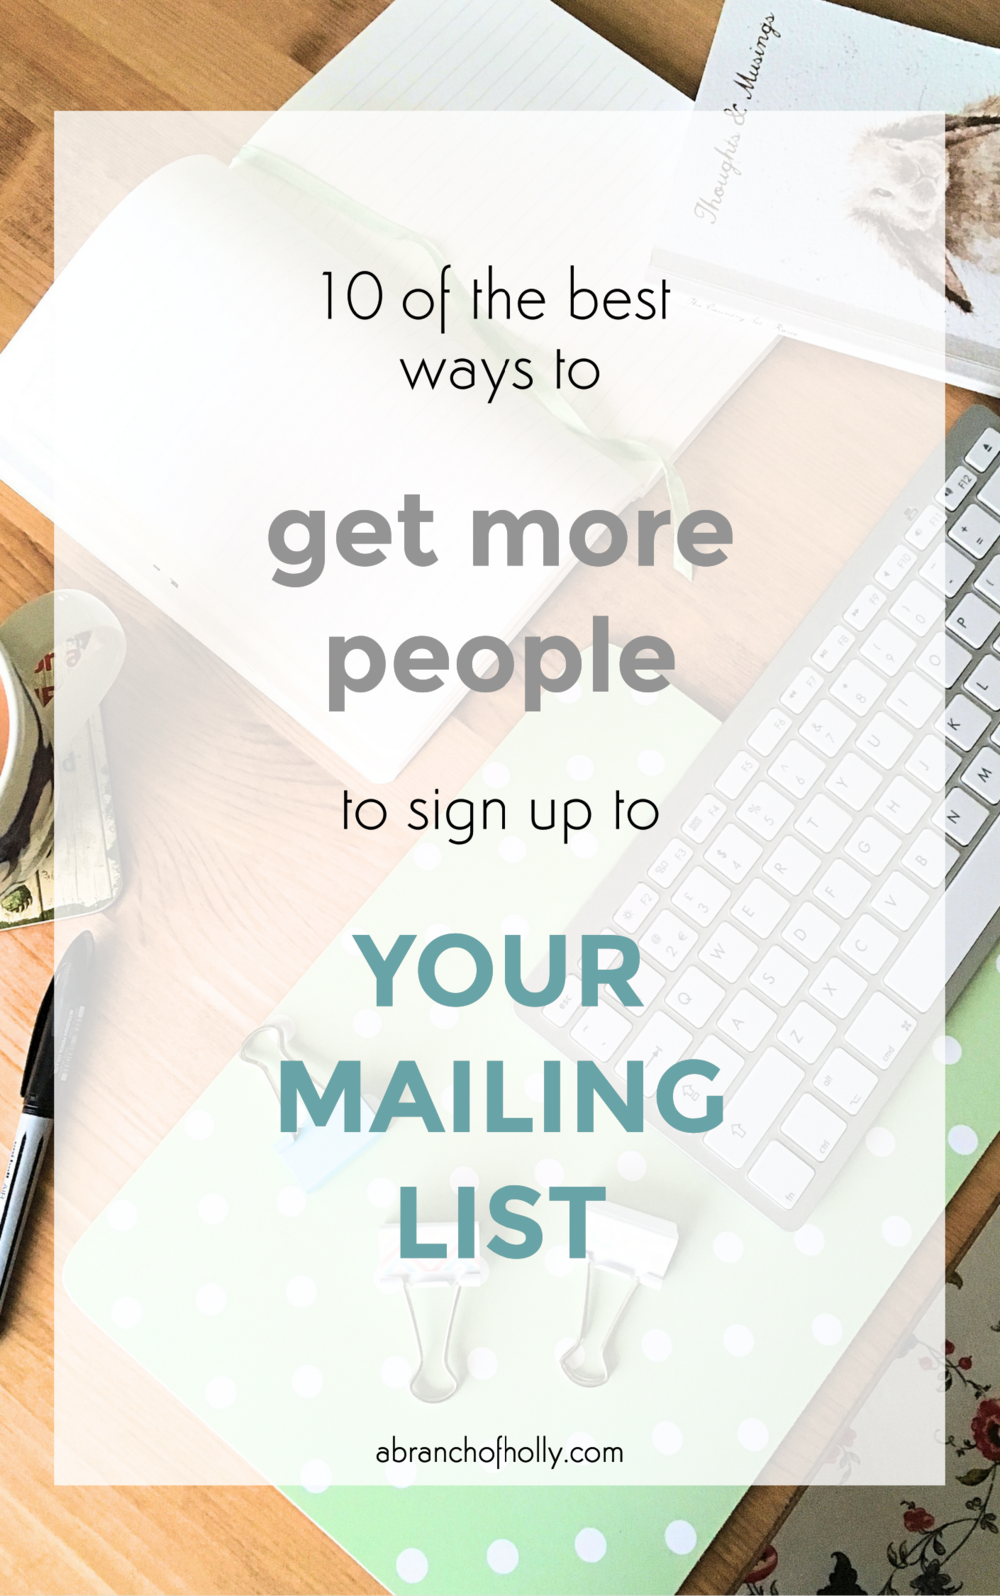 get more people to sign up to mailing list